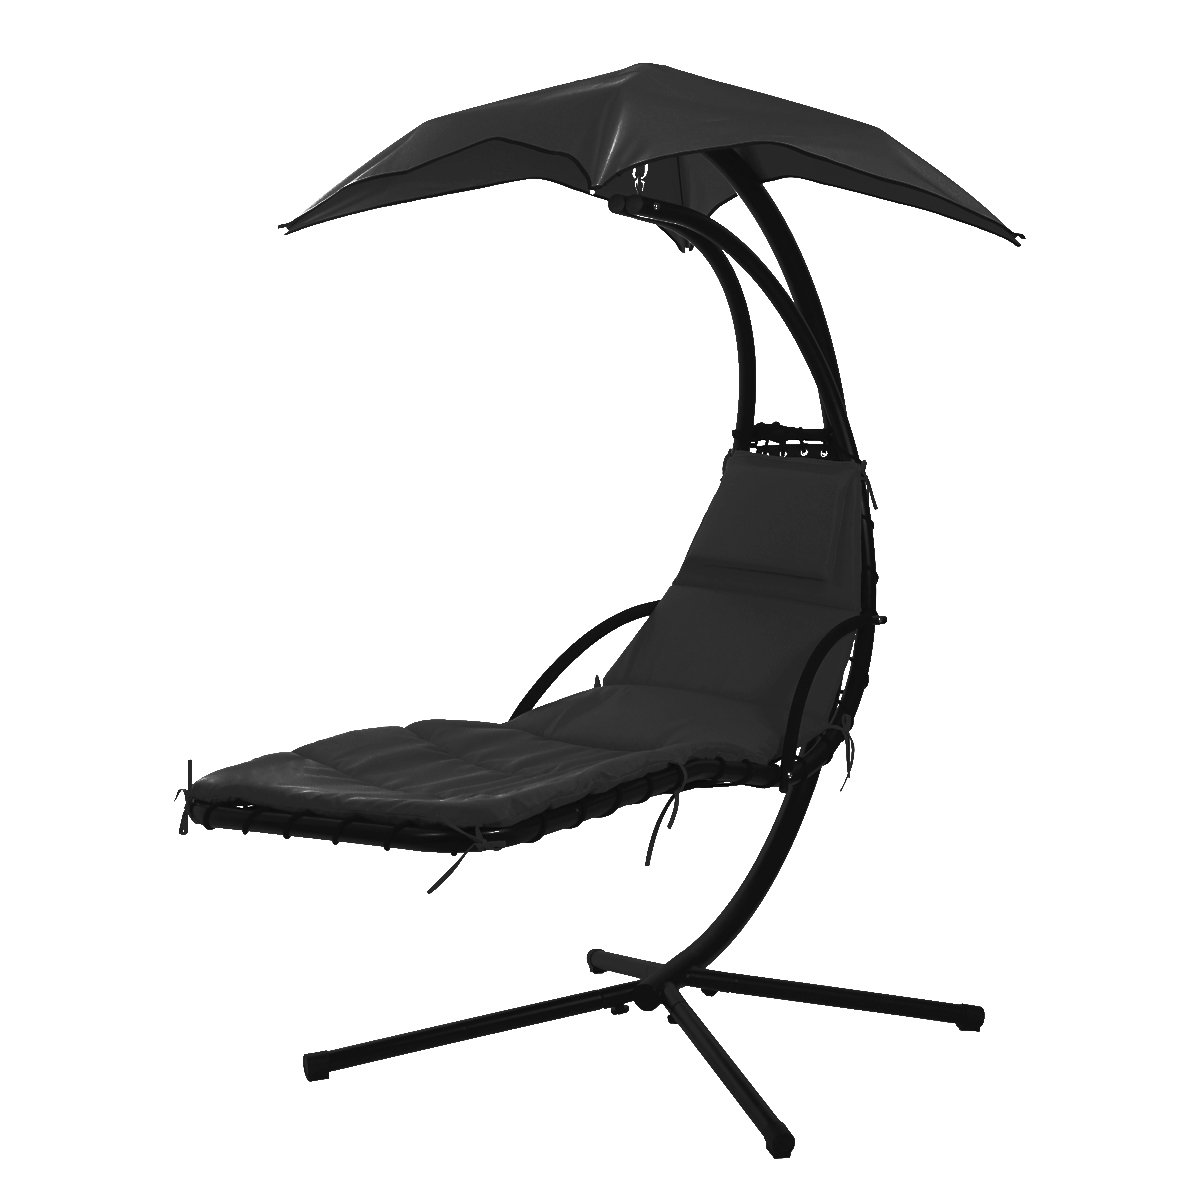 MR Direct NEW Hanging Chaise Lounger Chair Arc Stand Air Porch Swing Hammock Chair Canopy Black